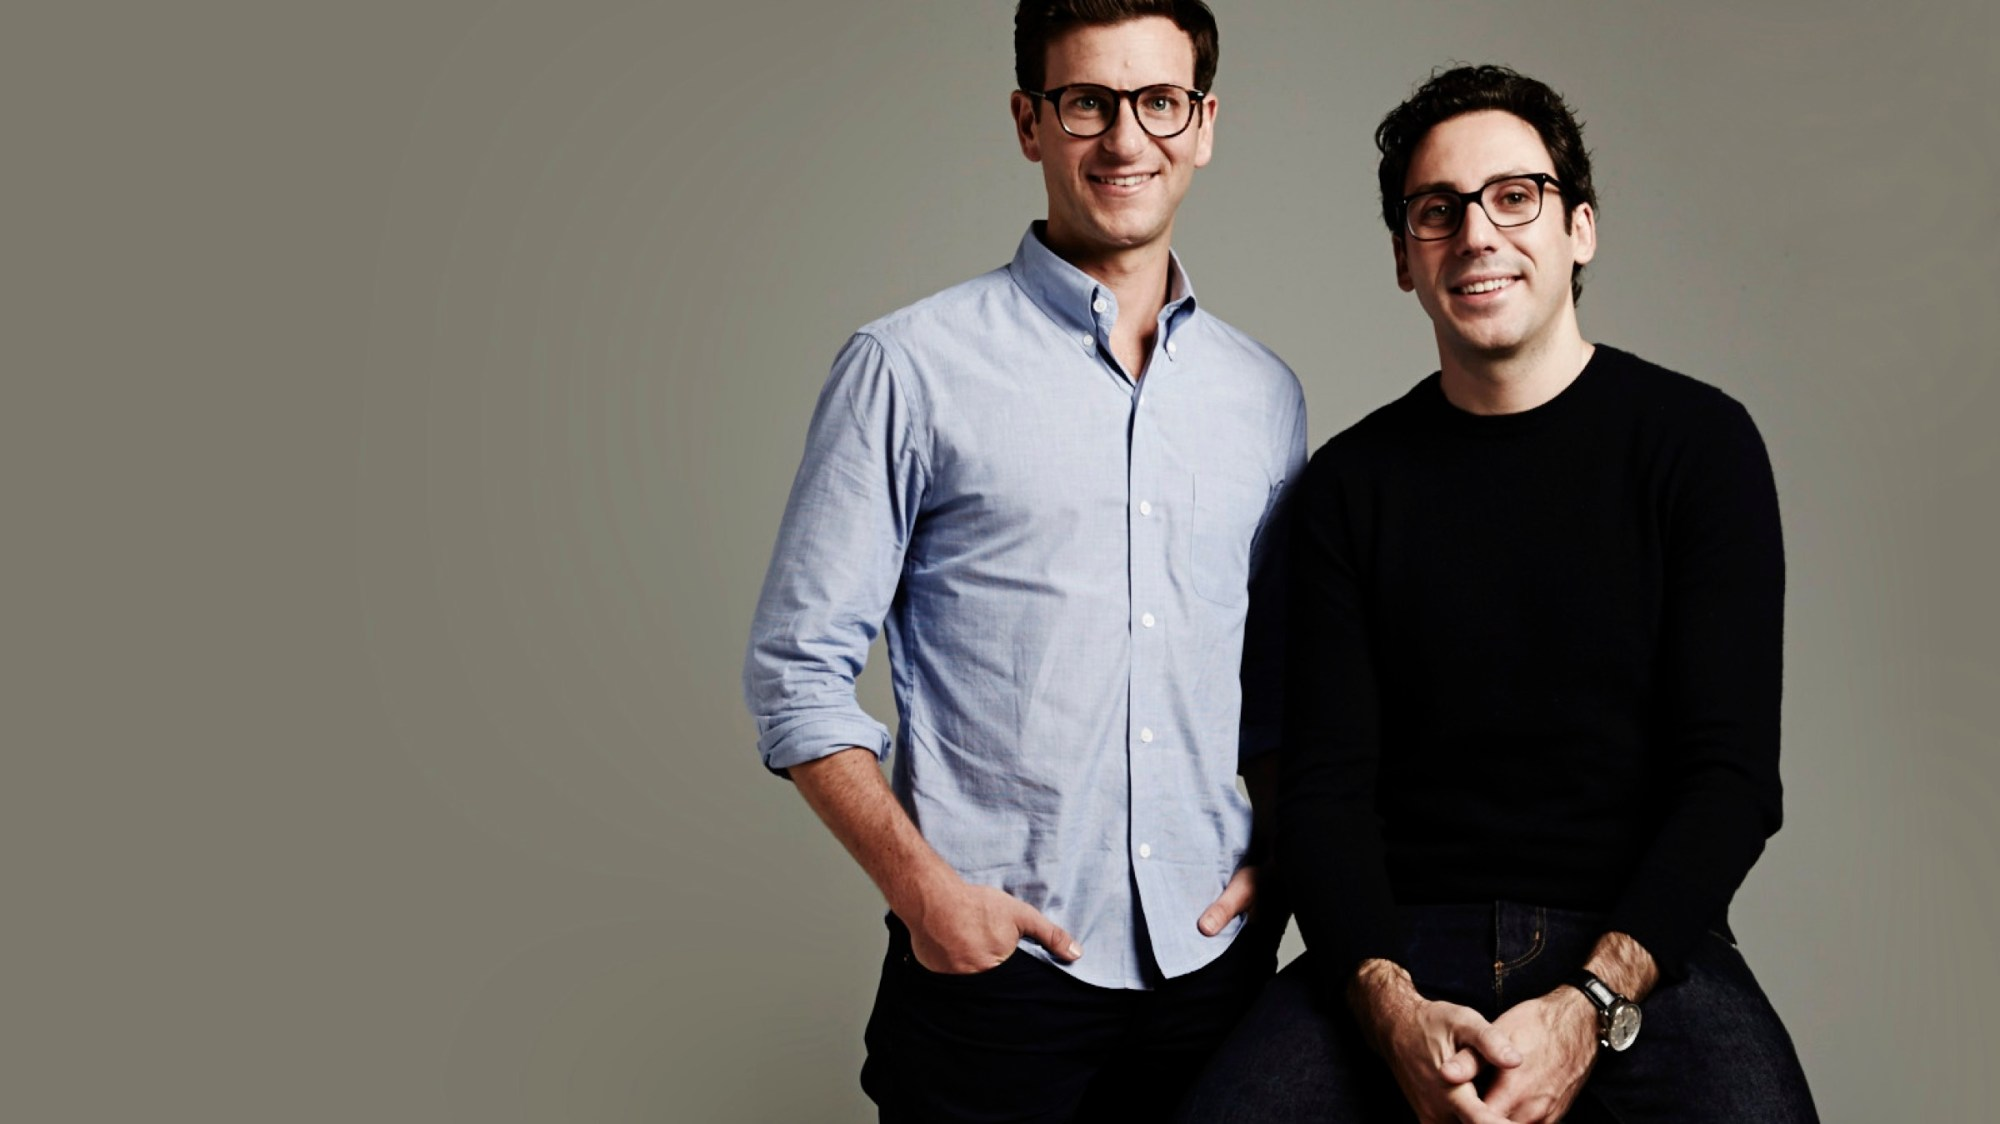 Warby Parker co-CEOs Dave Gilboa and Neil Blumenthal